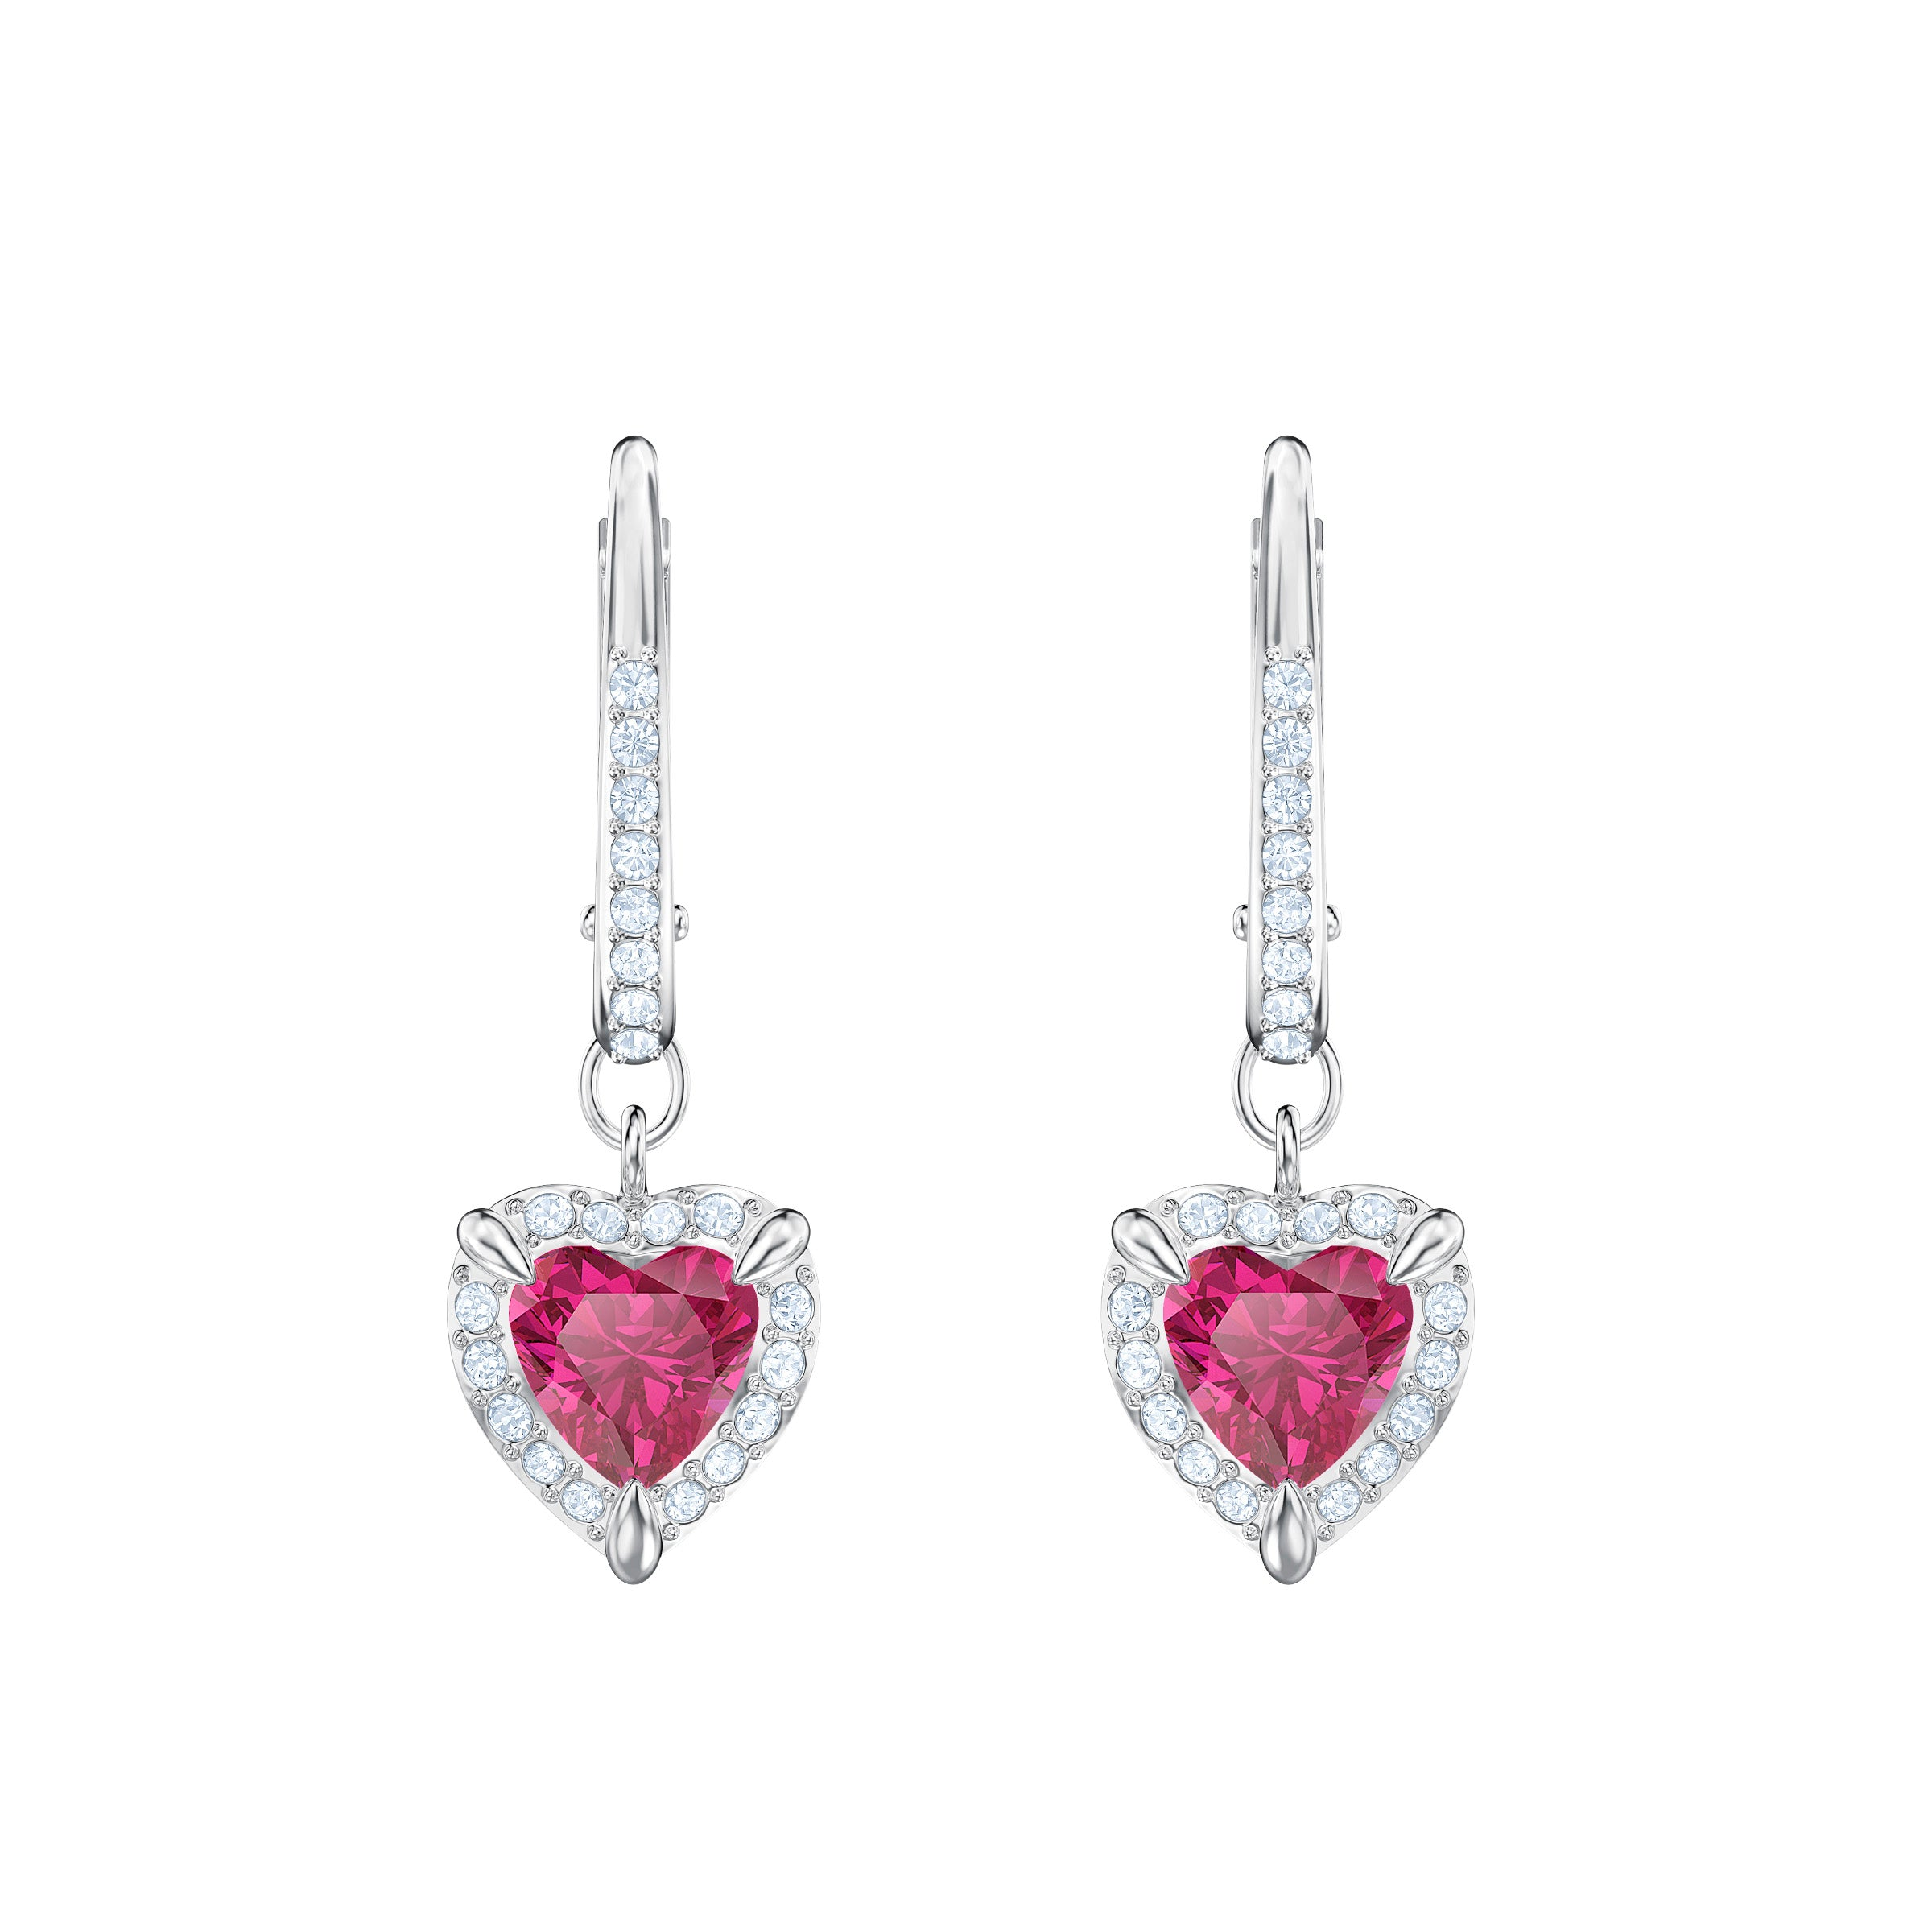 SWAROVSKI - One Earrings